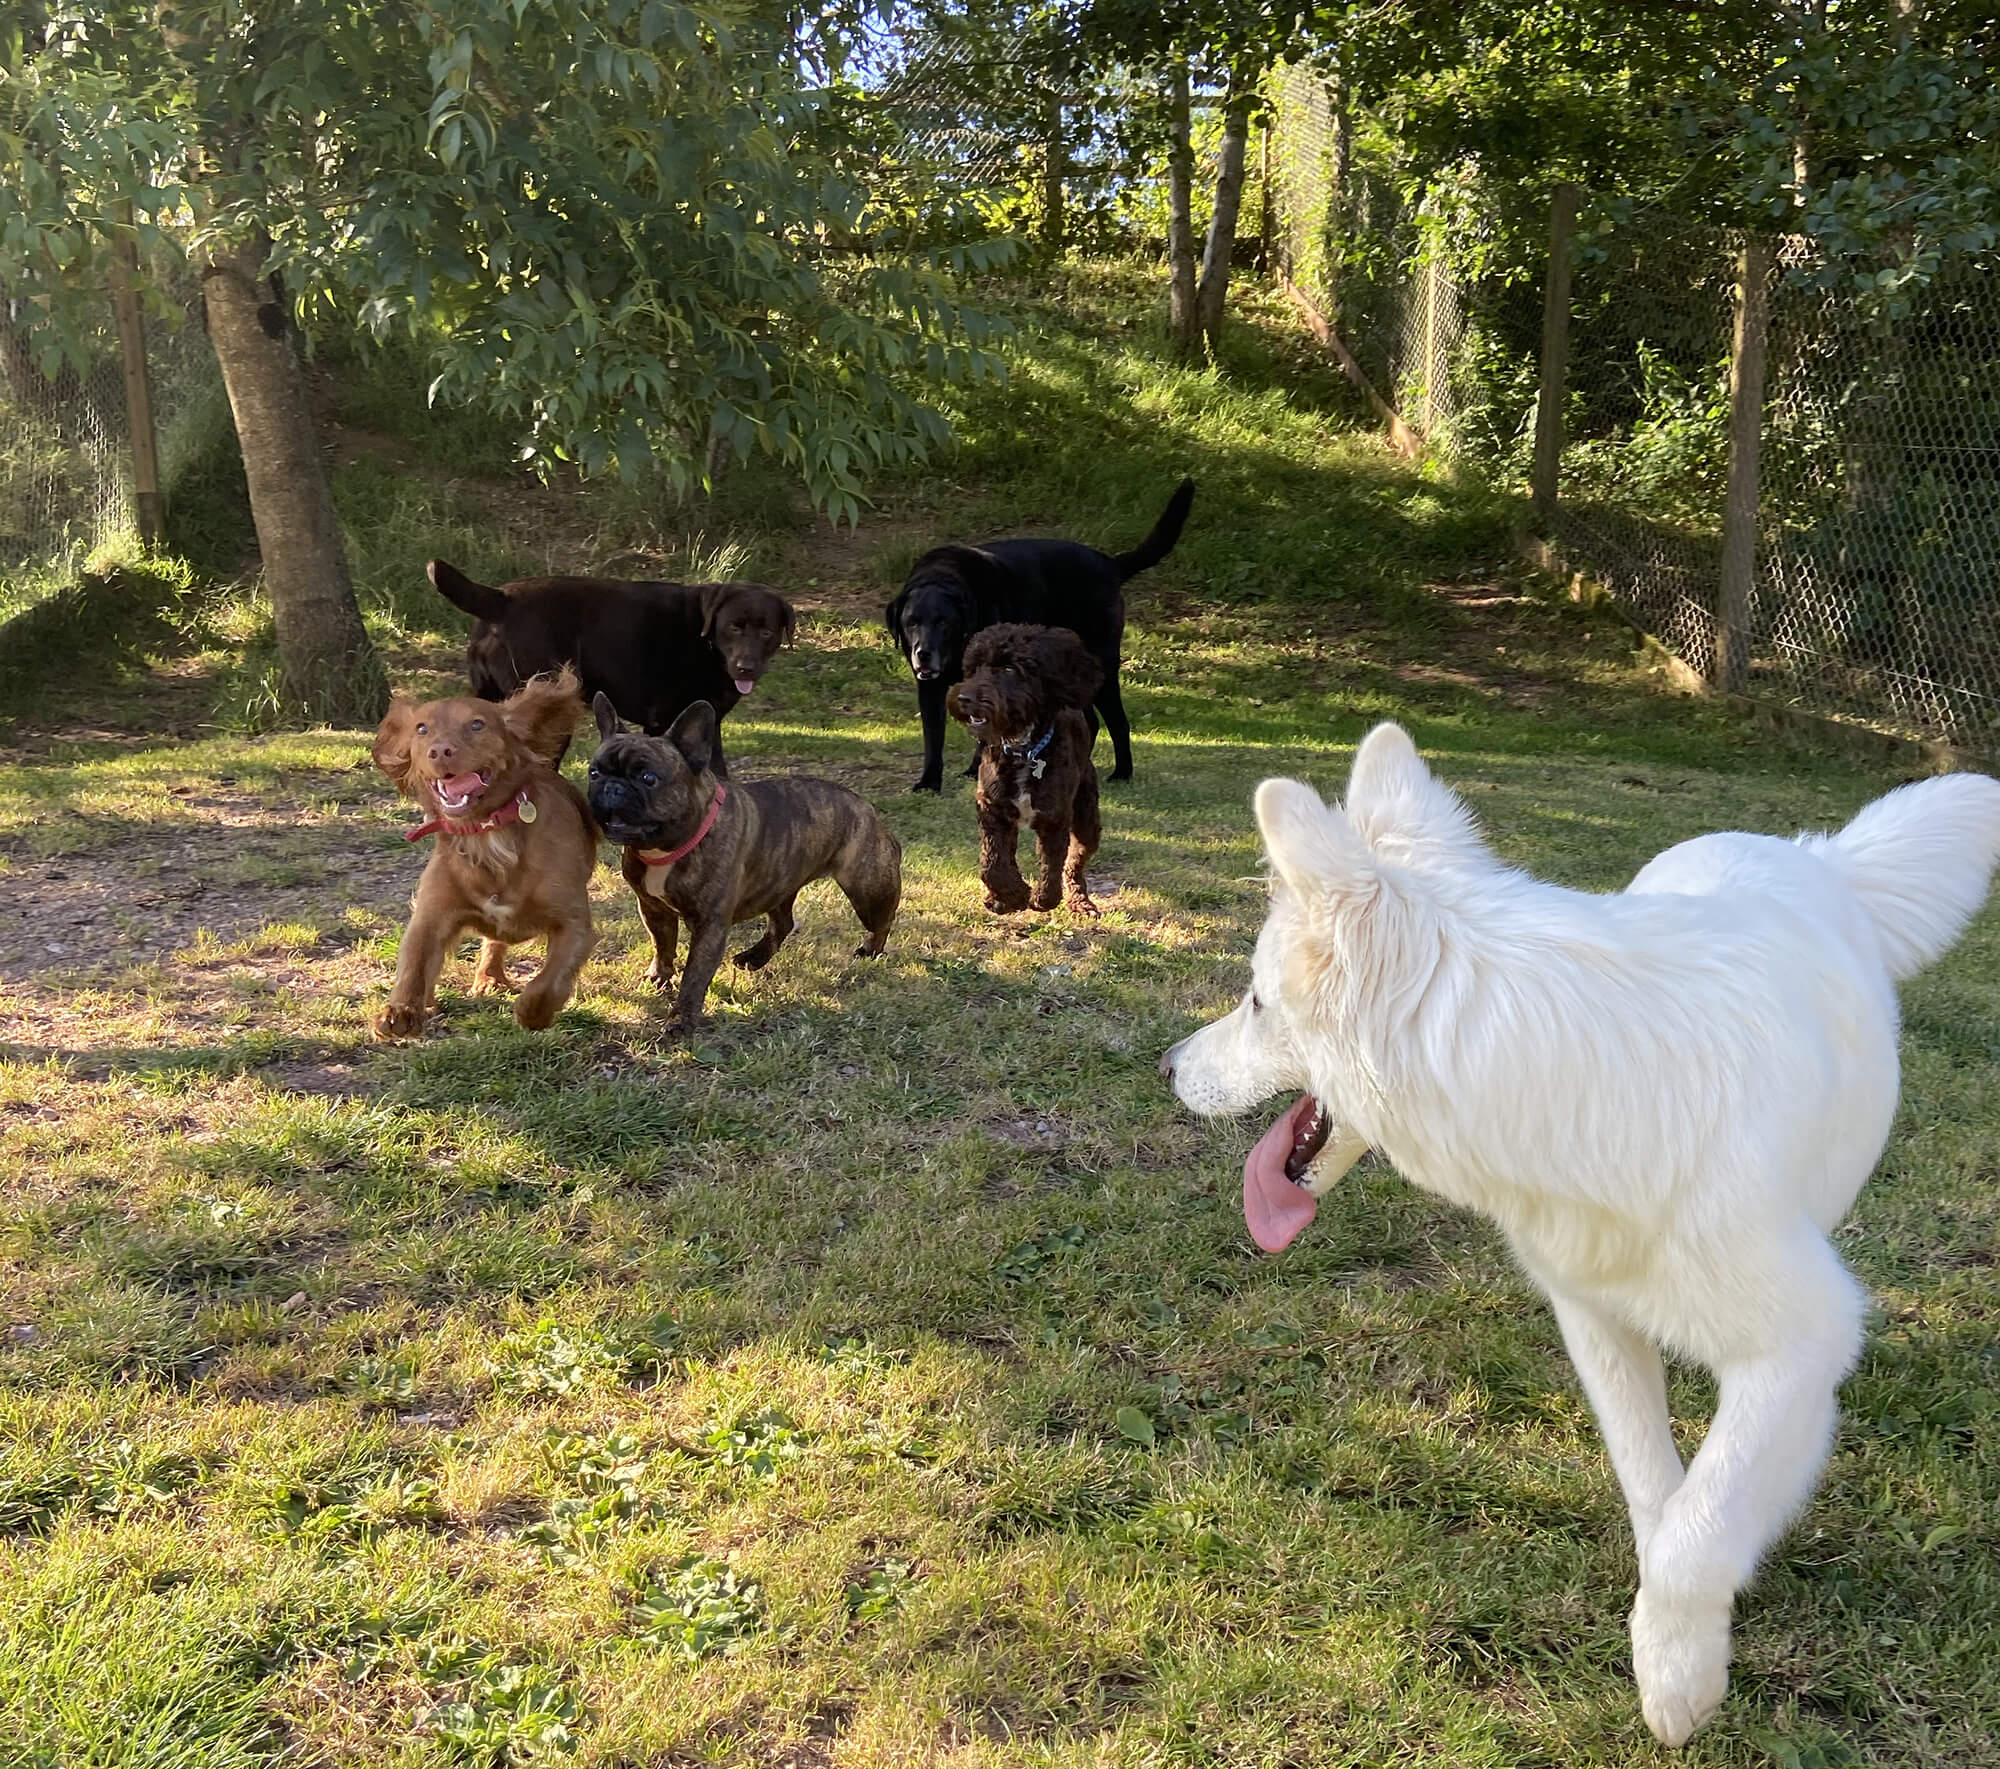 A group of happy dogs playing in a safe environment